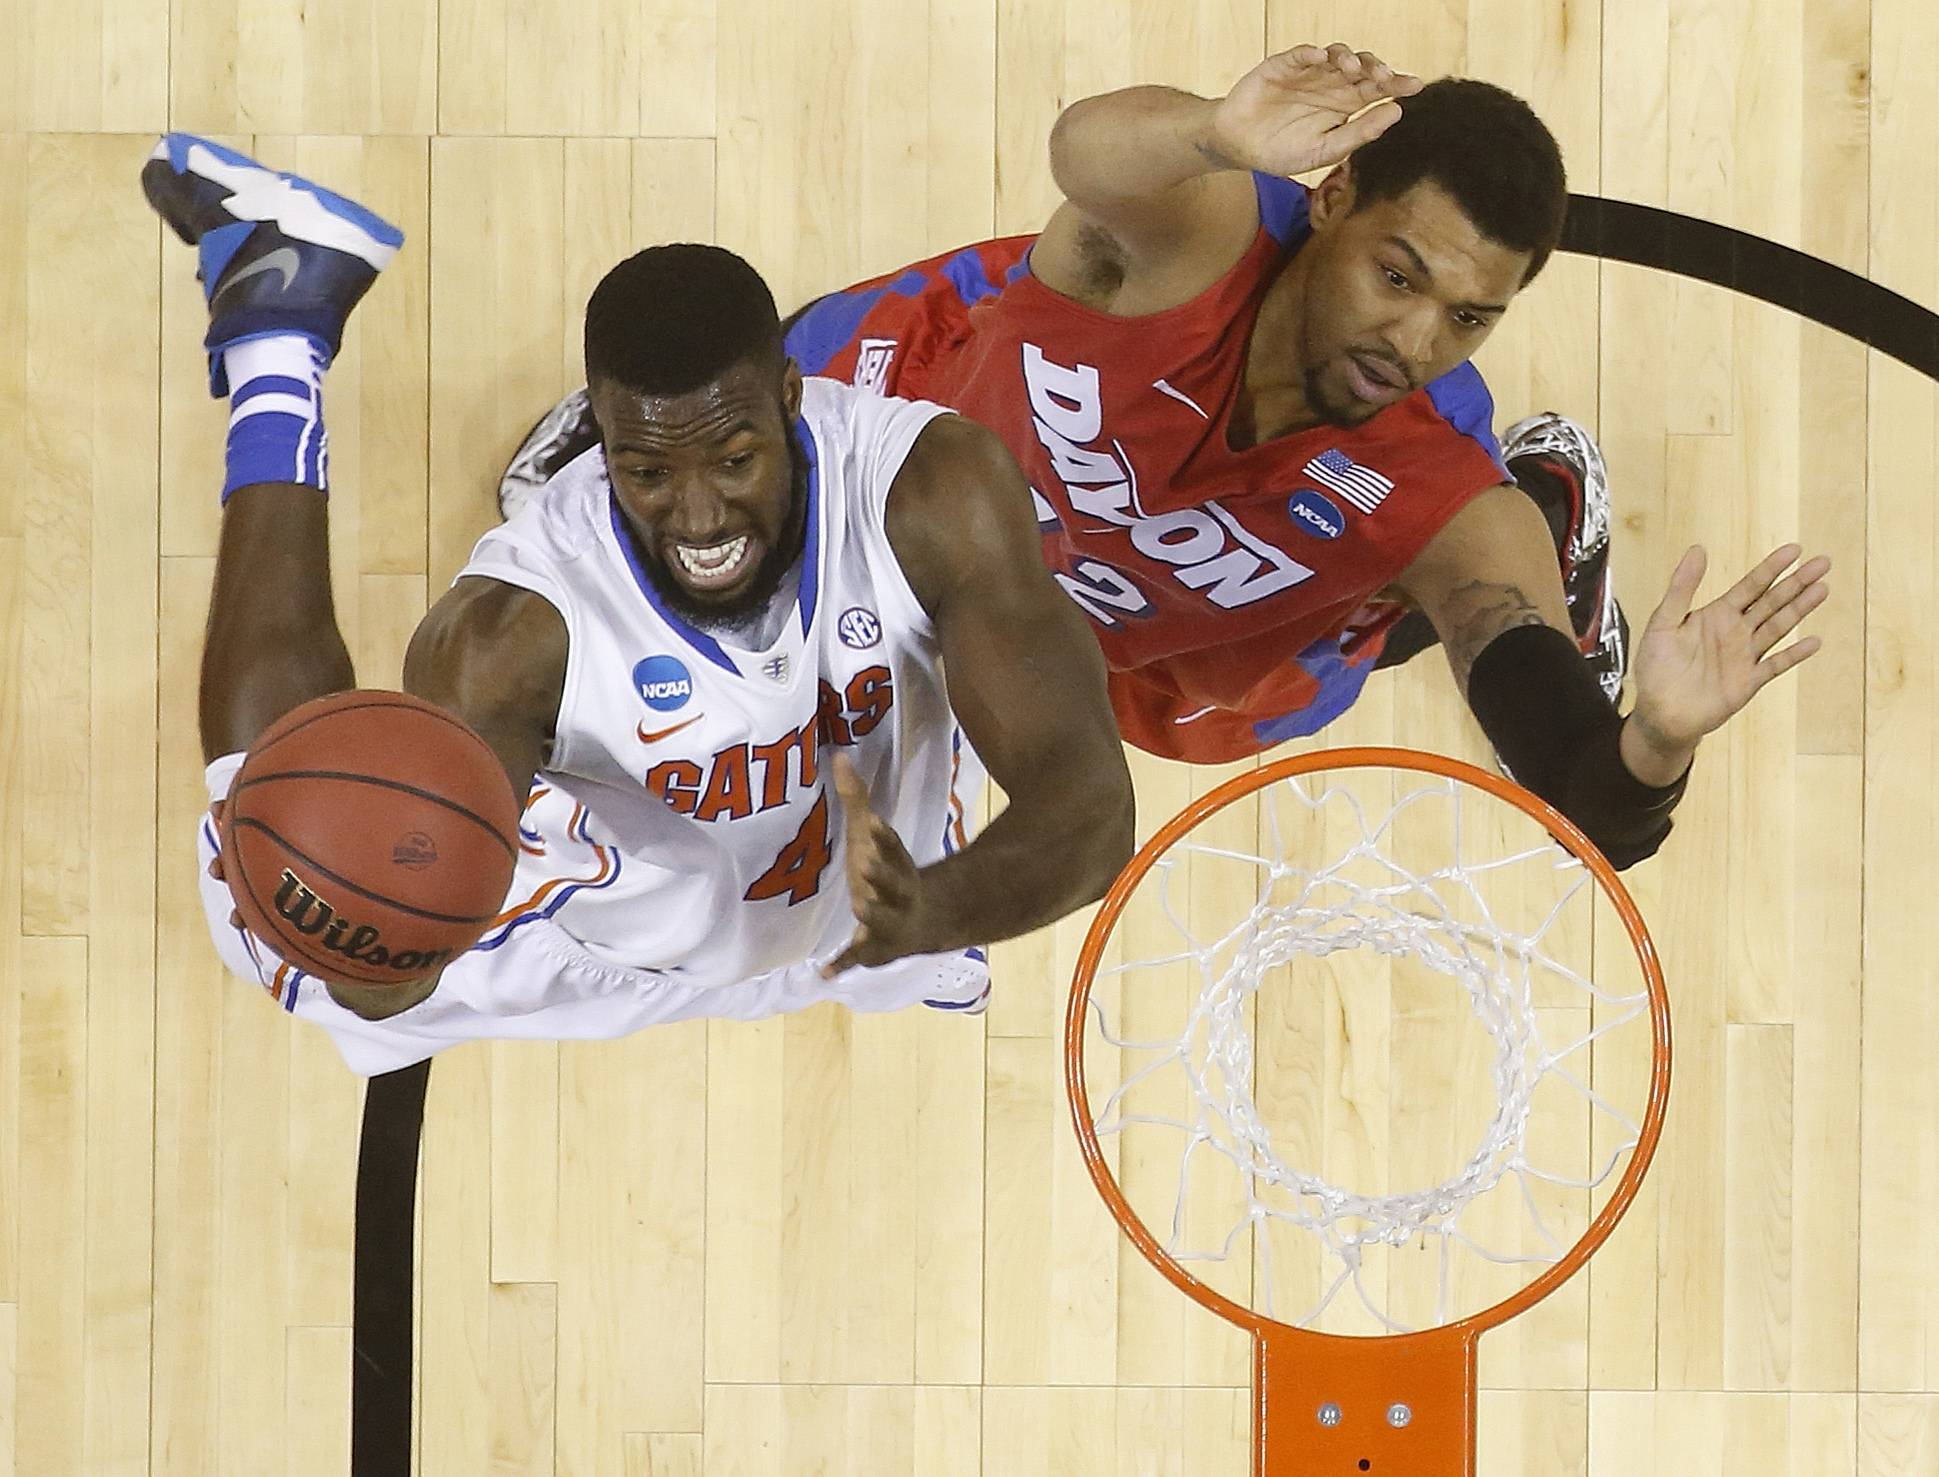 Florida center Patric Young (4) shoots against Dayton forward/center Jalen Robinson (12) during the first half in a regional final game at the NCAA college basketball tournament Saturday in Memphis, Tenn.